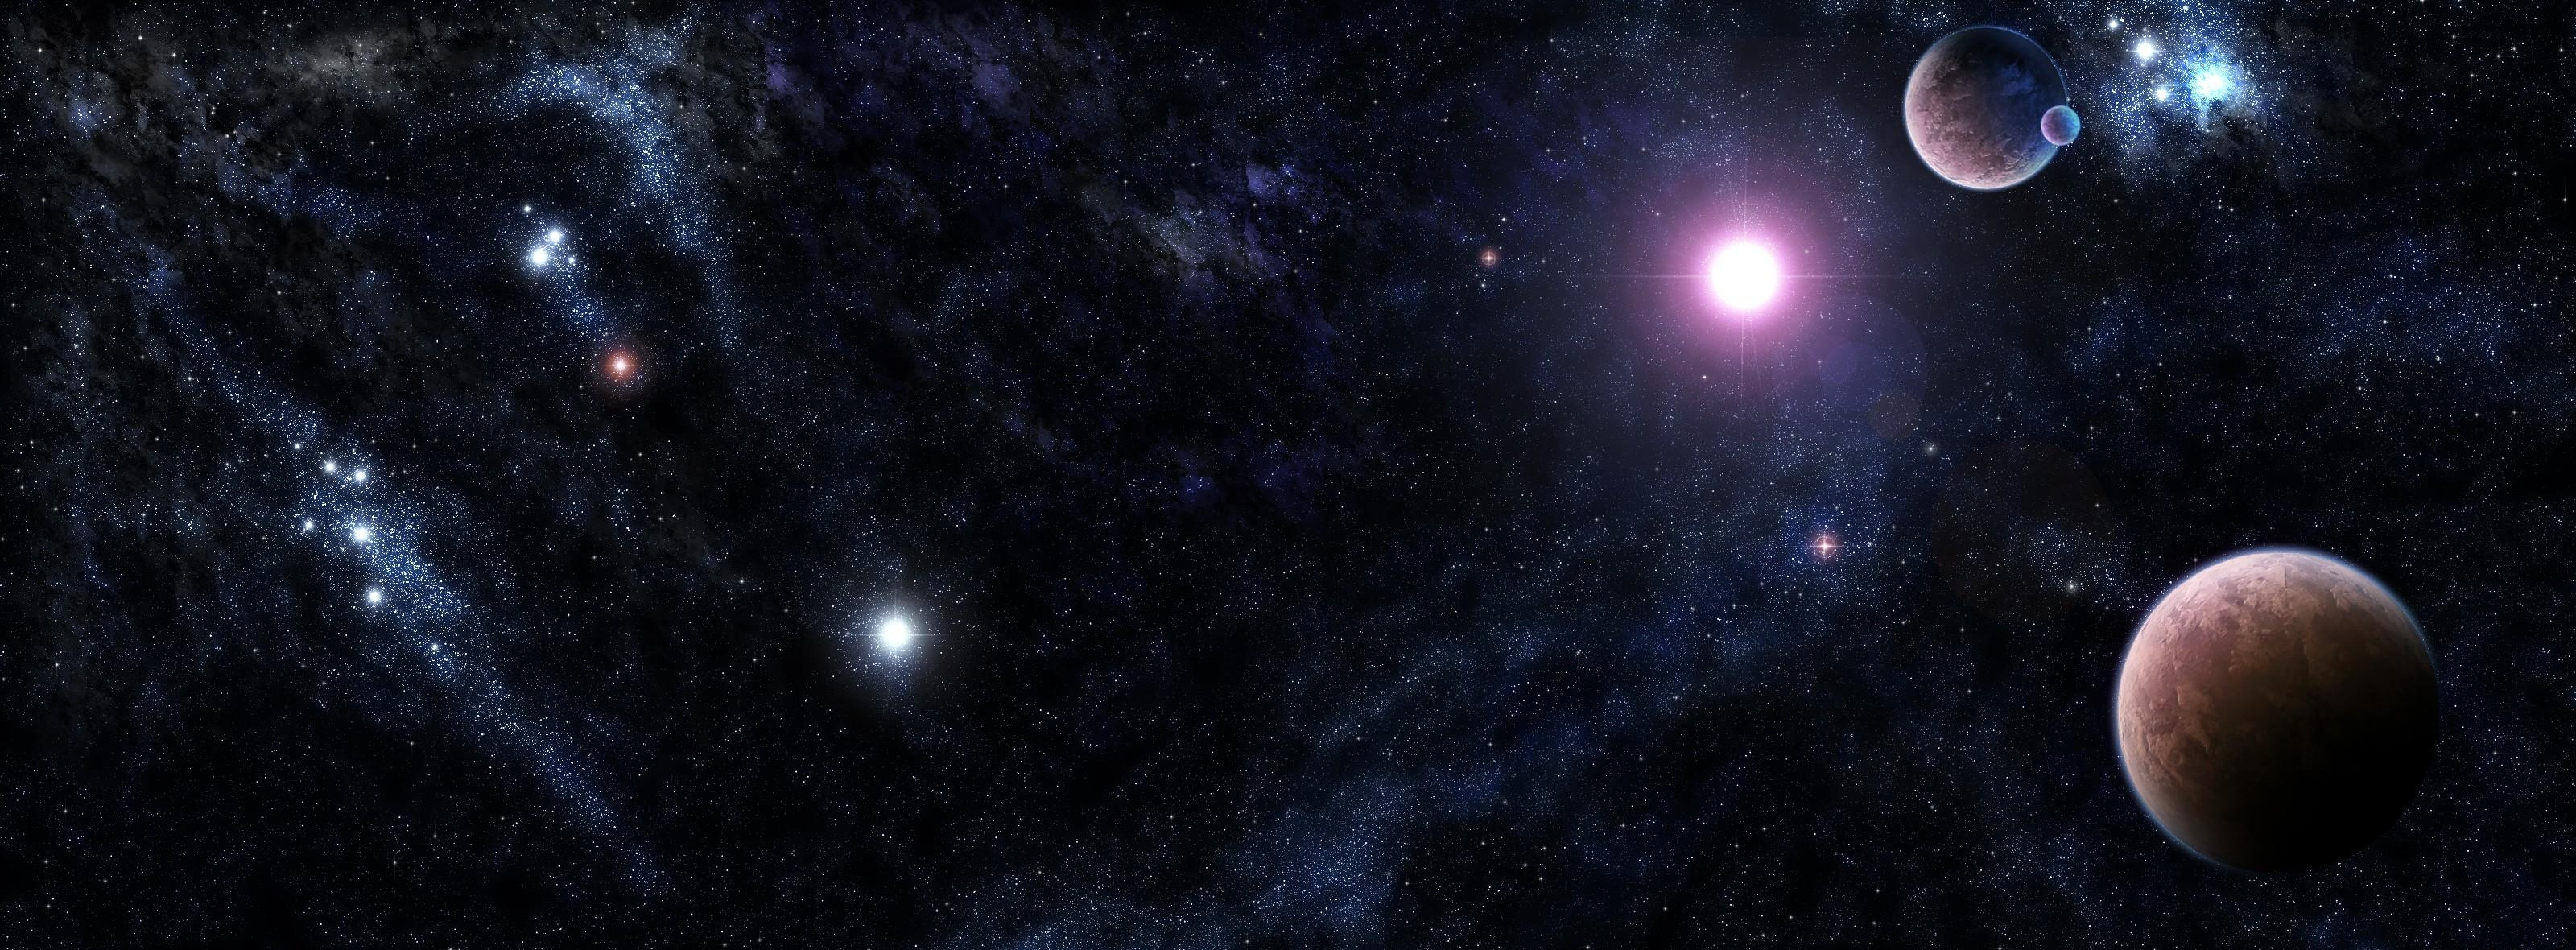 95130 download wallpaper Galaxy, Universe, Shine, Light, Stars, Planets screensavers and pictures for free